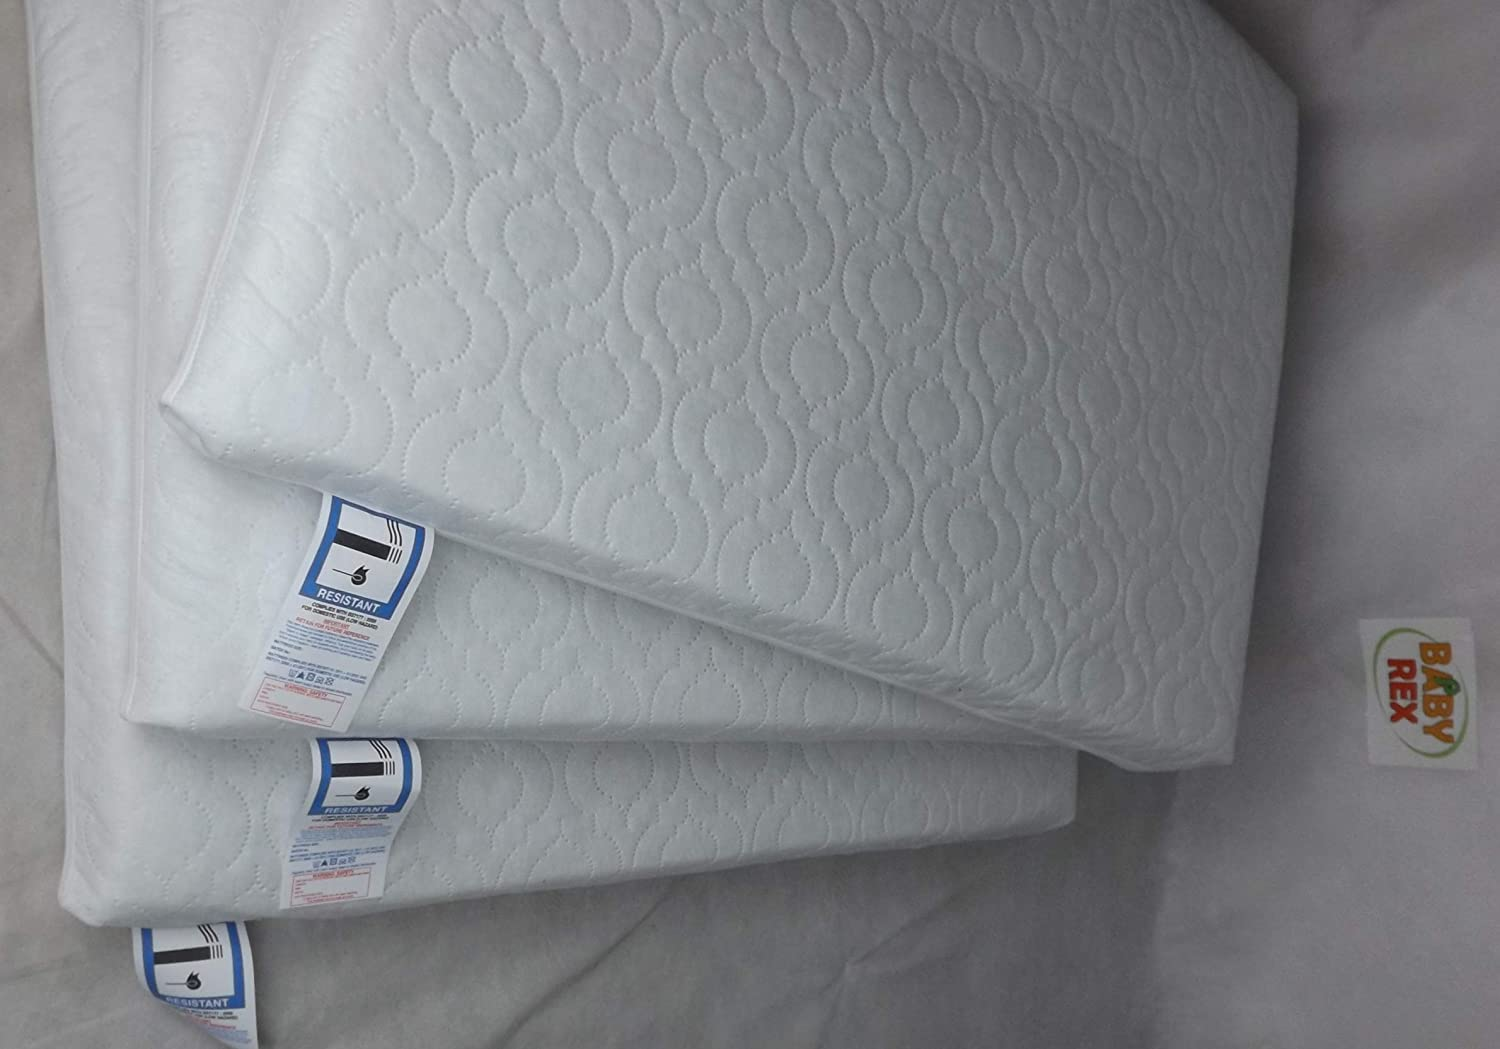 Baby Travel Cot Mattress 93 x 66 x 6 cm Quilted fits Most Graco//M/&P Cots Breathable Antiallergenic//BABY REX/®